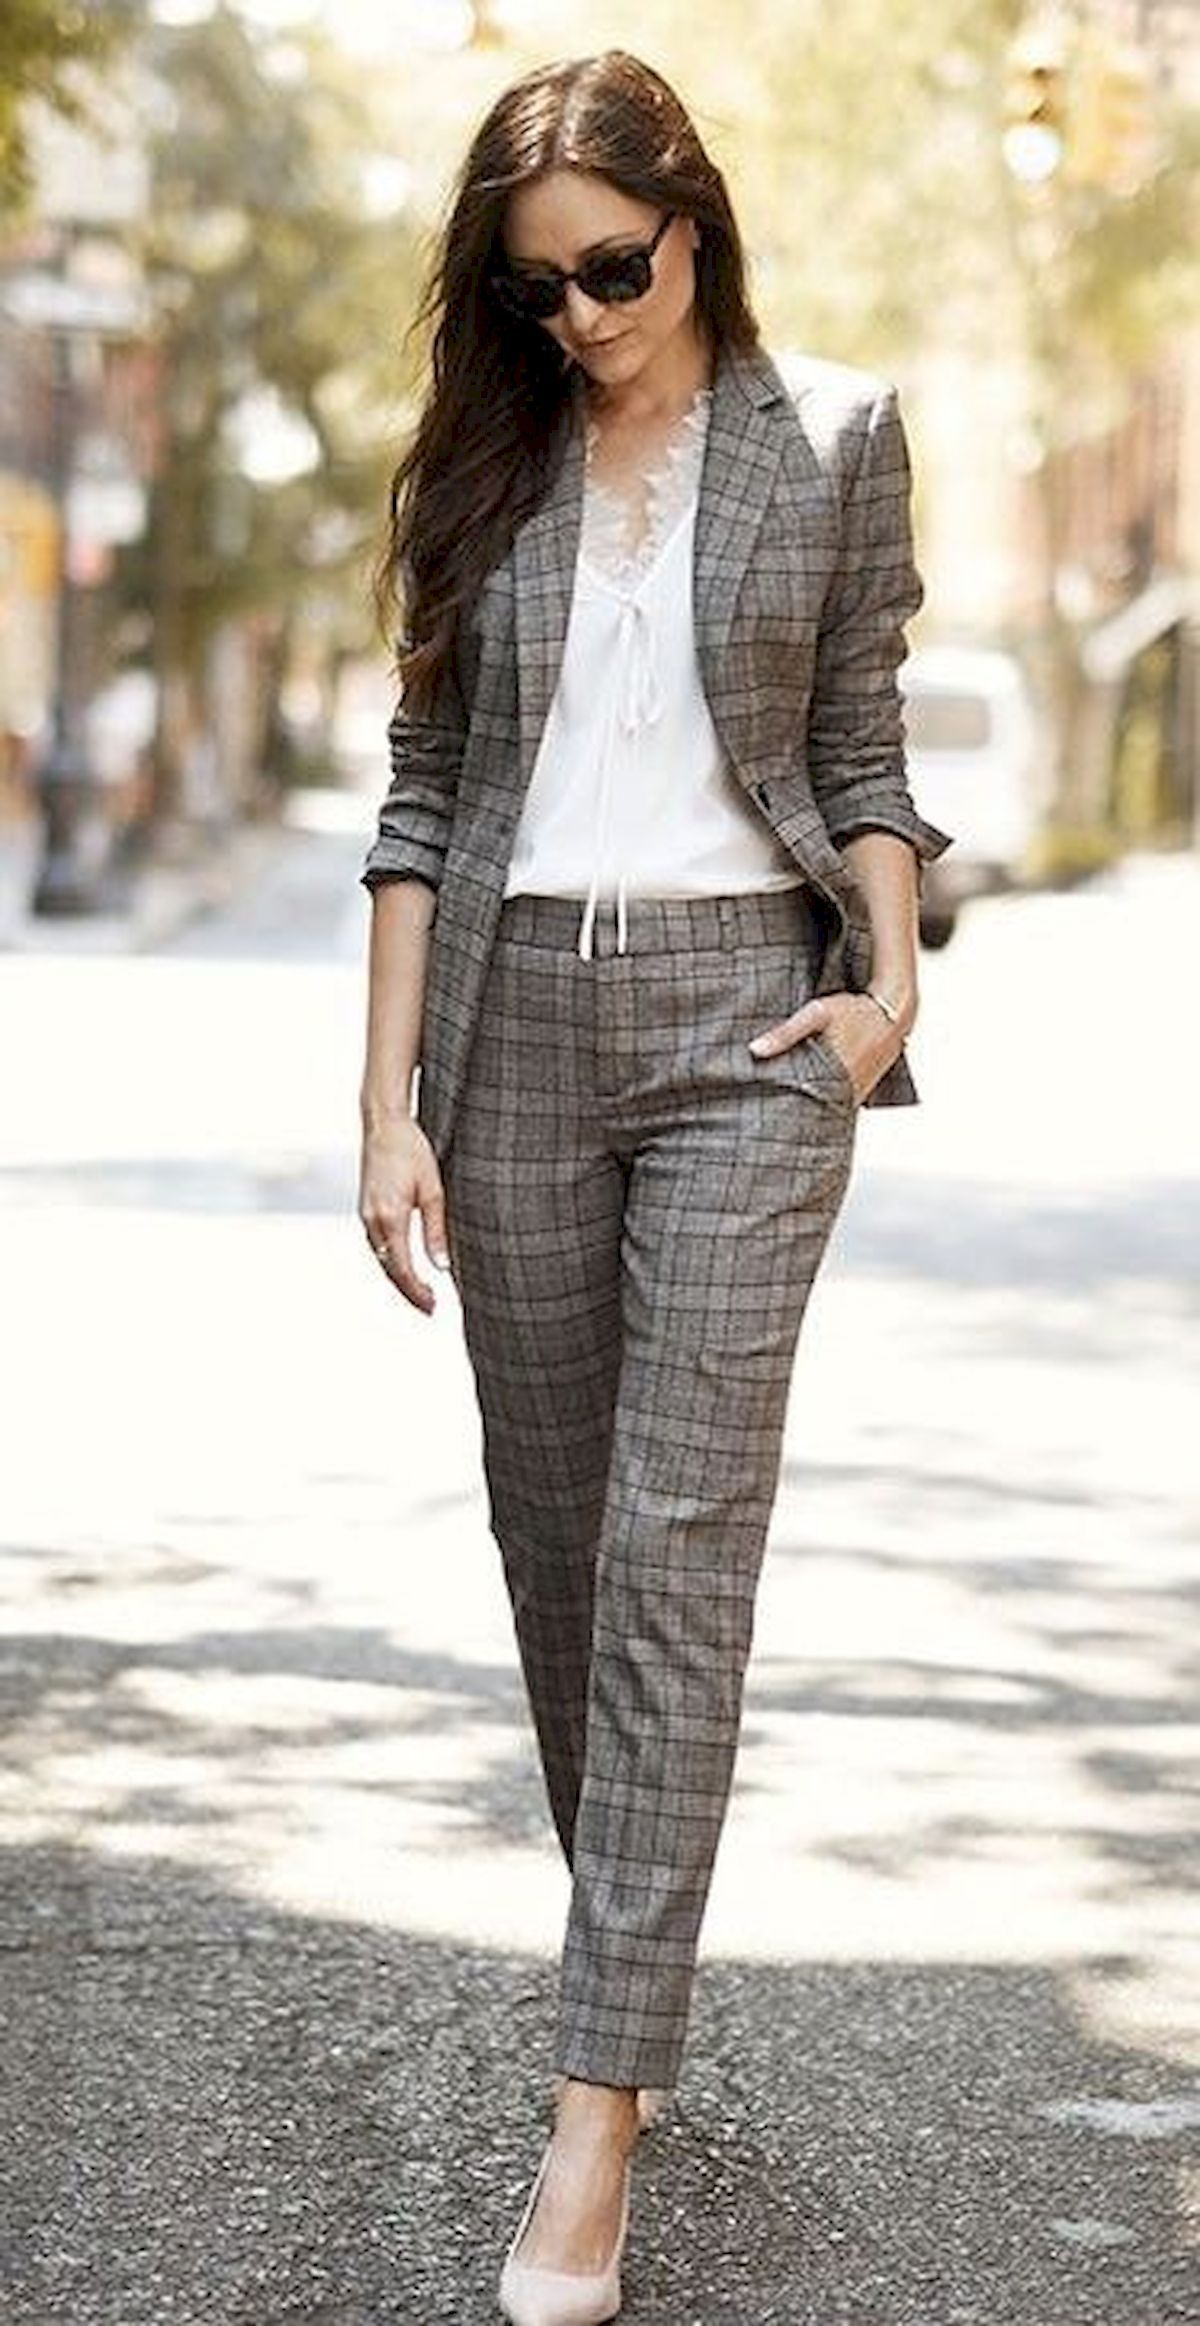 80 Excellent Business Professional Outfits Ideas for Women (1 #businessprofessionaloutfits